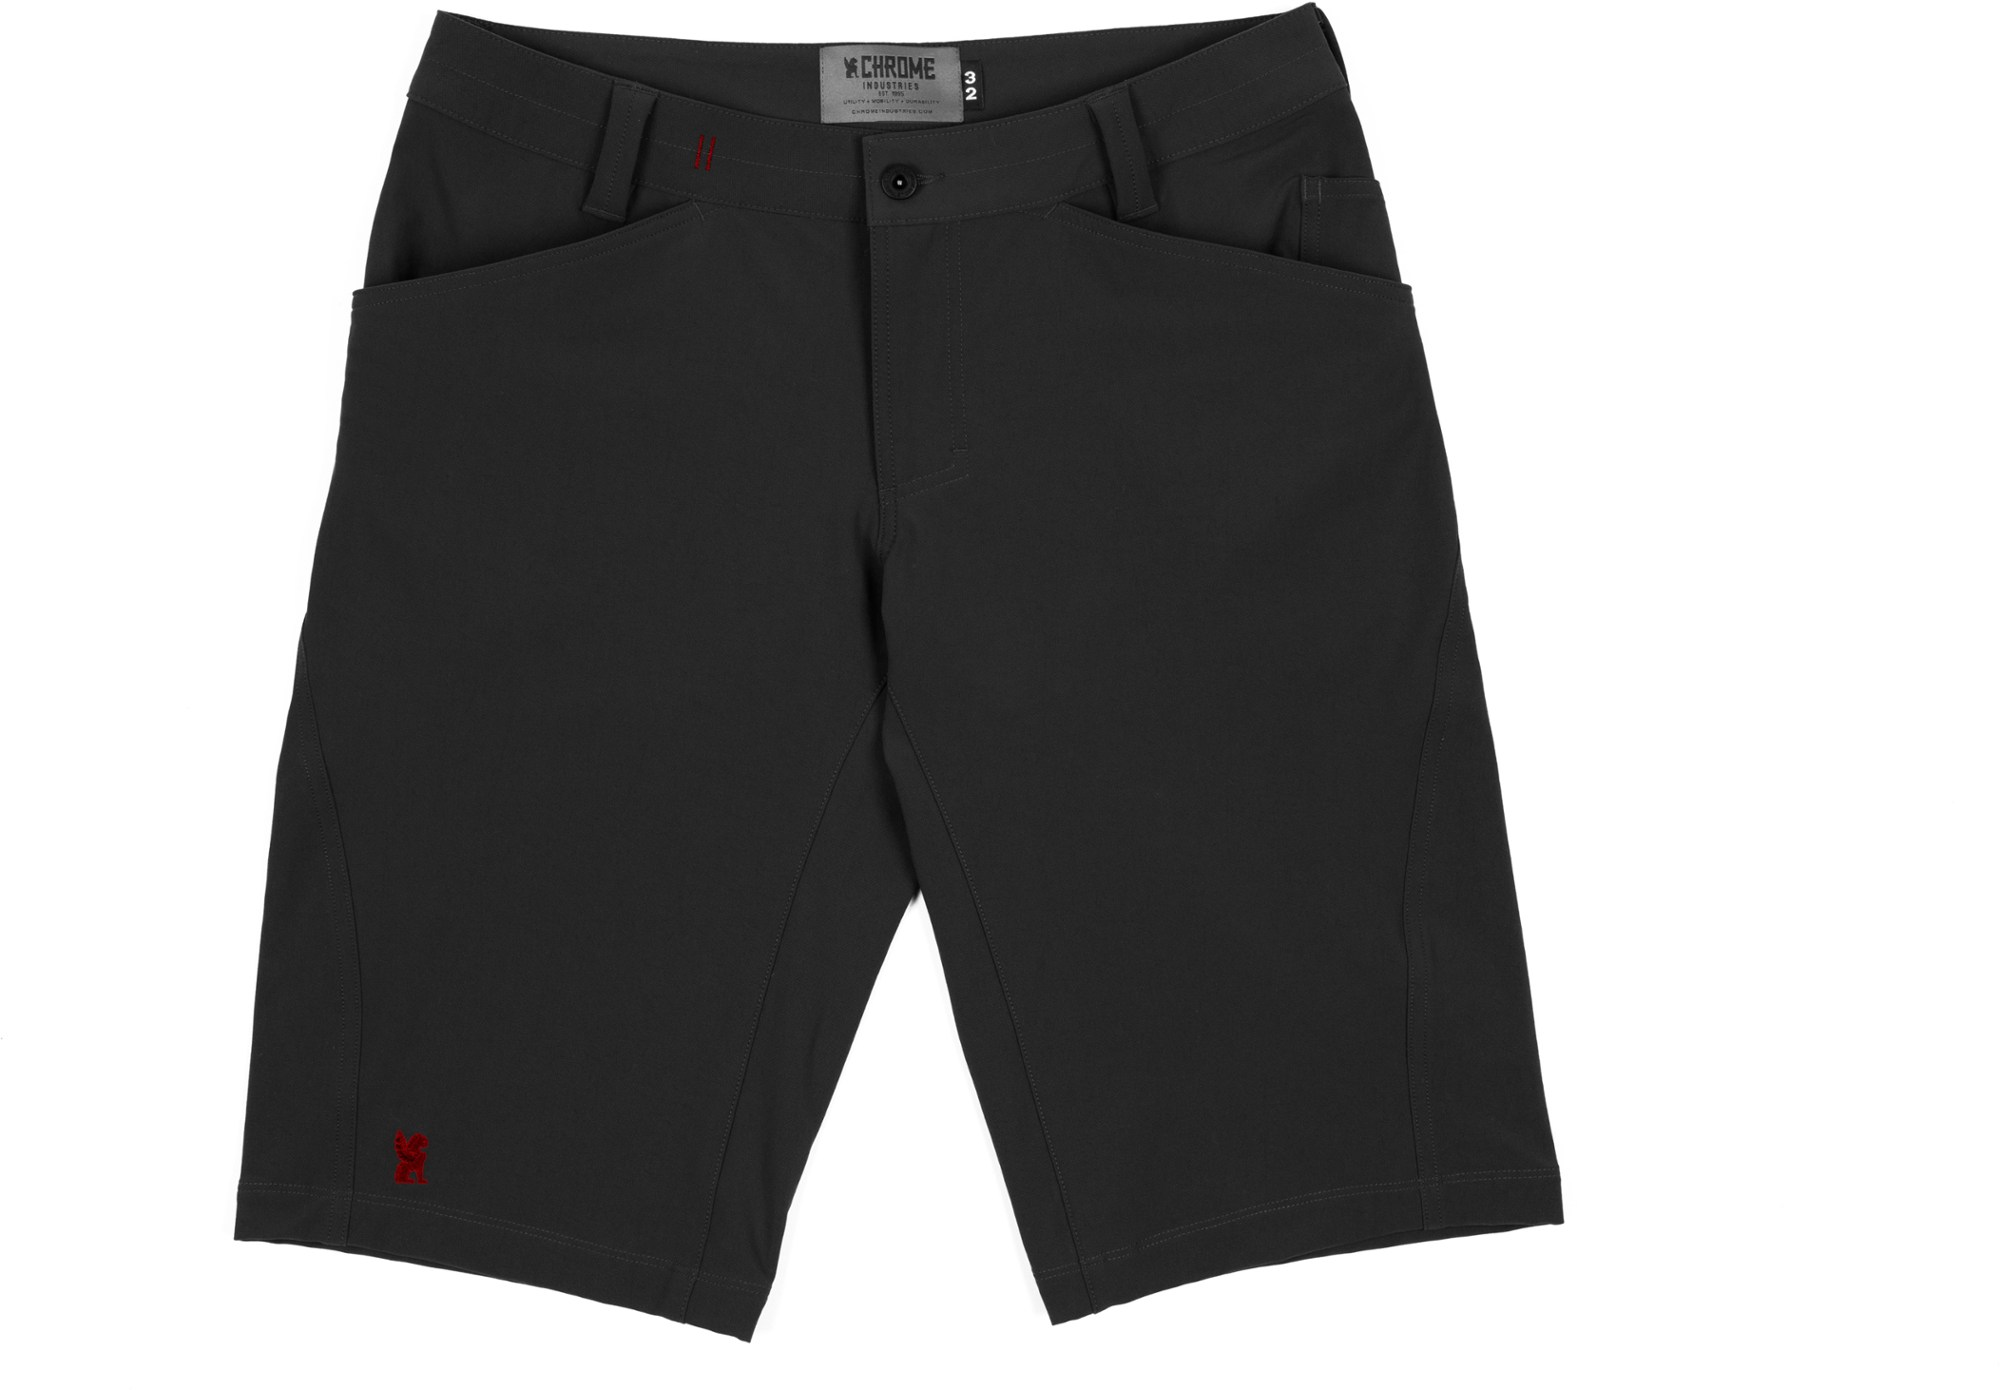 Chrome Union Bike Shorts 2.0 - Men's